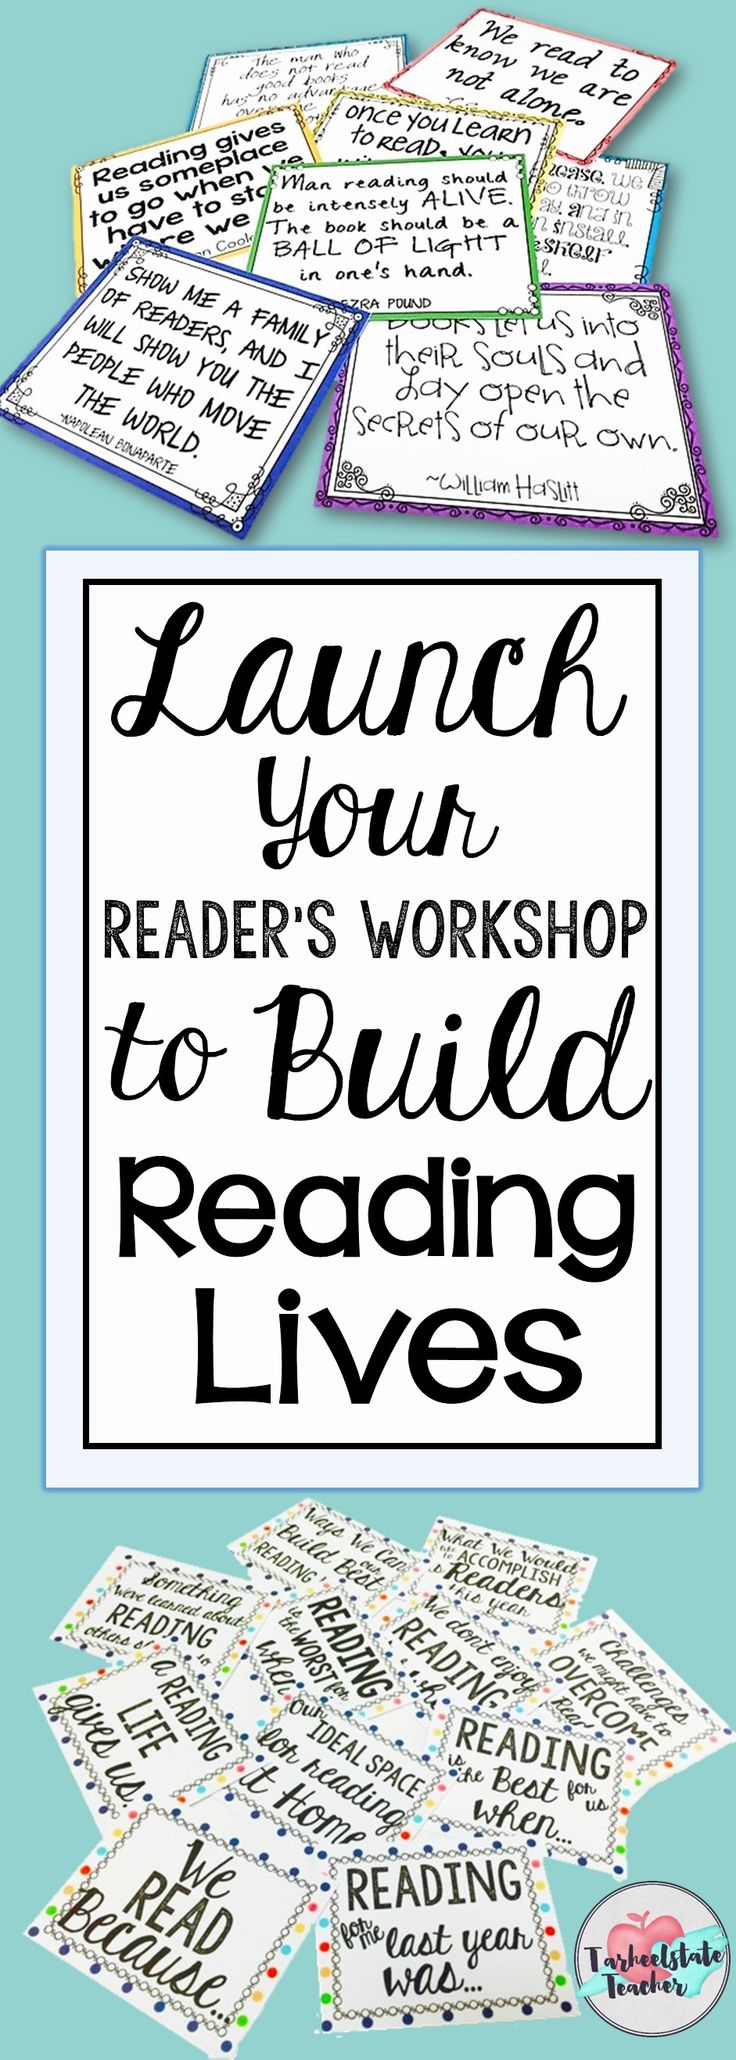 Build a Reading Life in your 4th 5th grade reader's workshop this year or have your students recommit to reading goals for New Years. Anchor chart parts, reading response journal/notebook prompts, quotation posters about reading-everything you need to create a love of reading and LAUNCH upper elementary workshop this year!